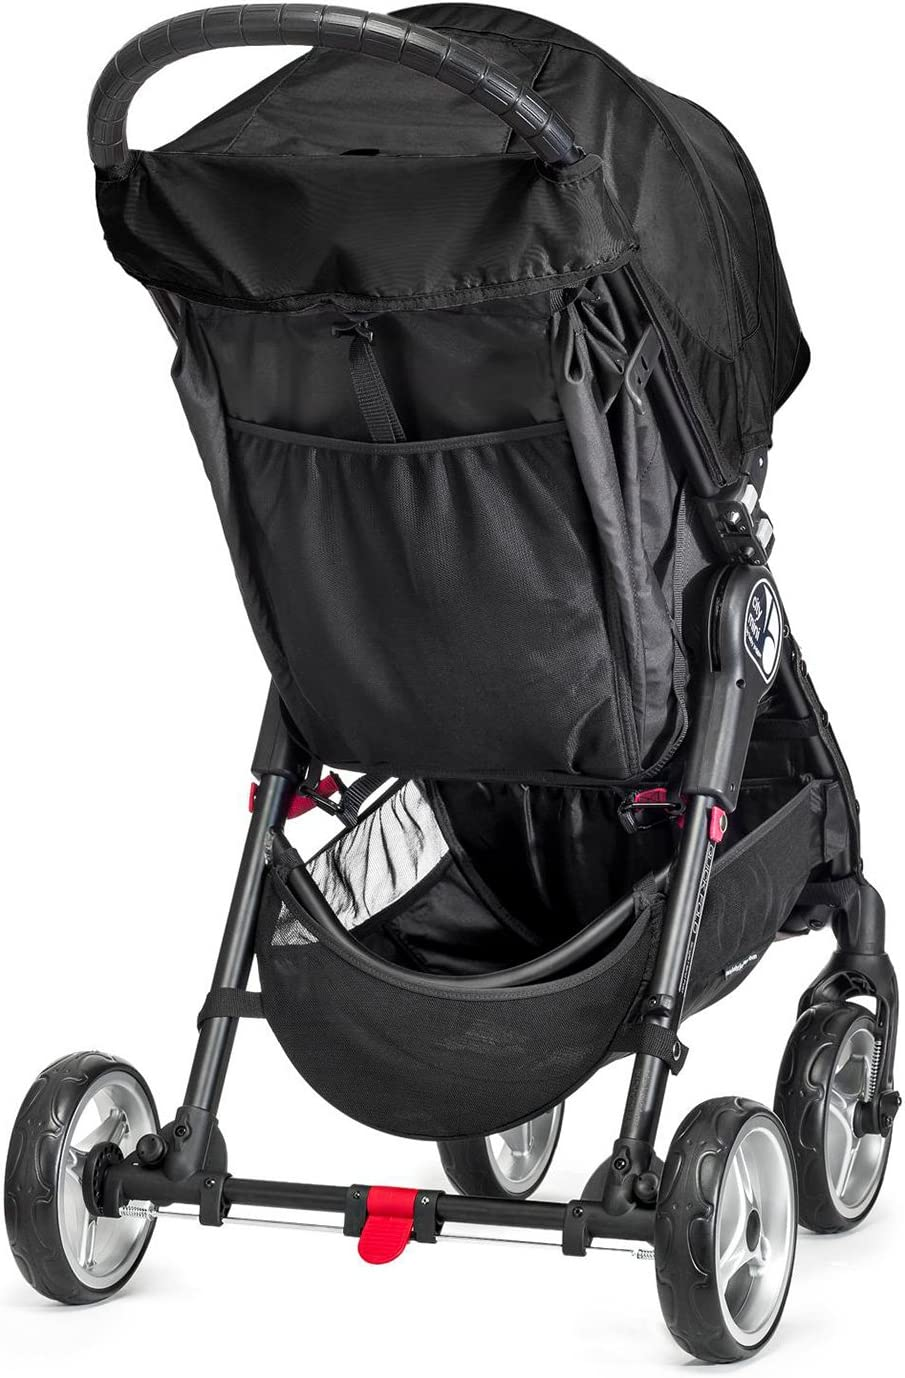 Baby Jogger City Mini 4 - Silla de paseo, color negro: Amazon.es: Bebé